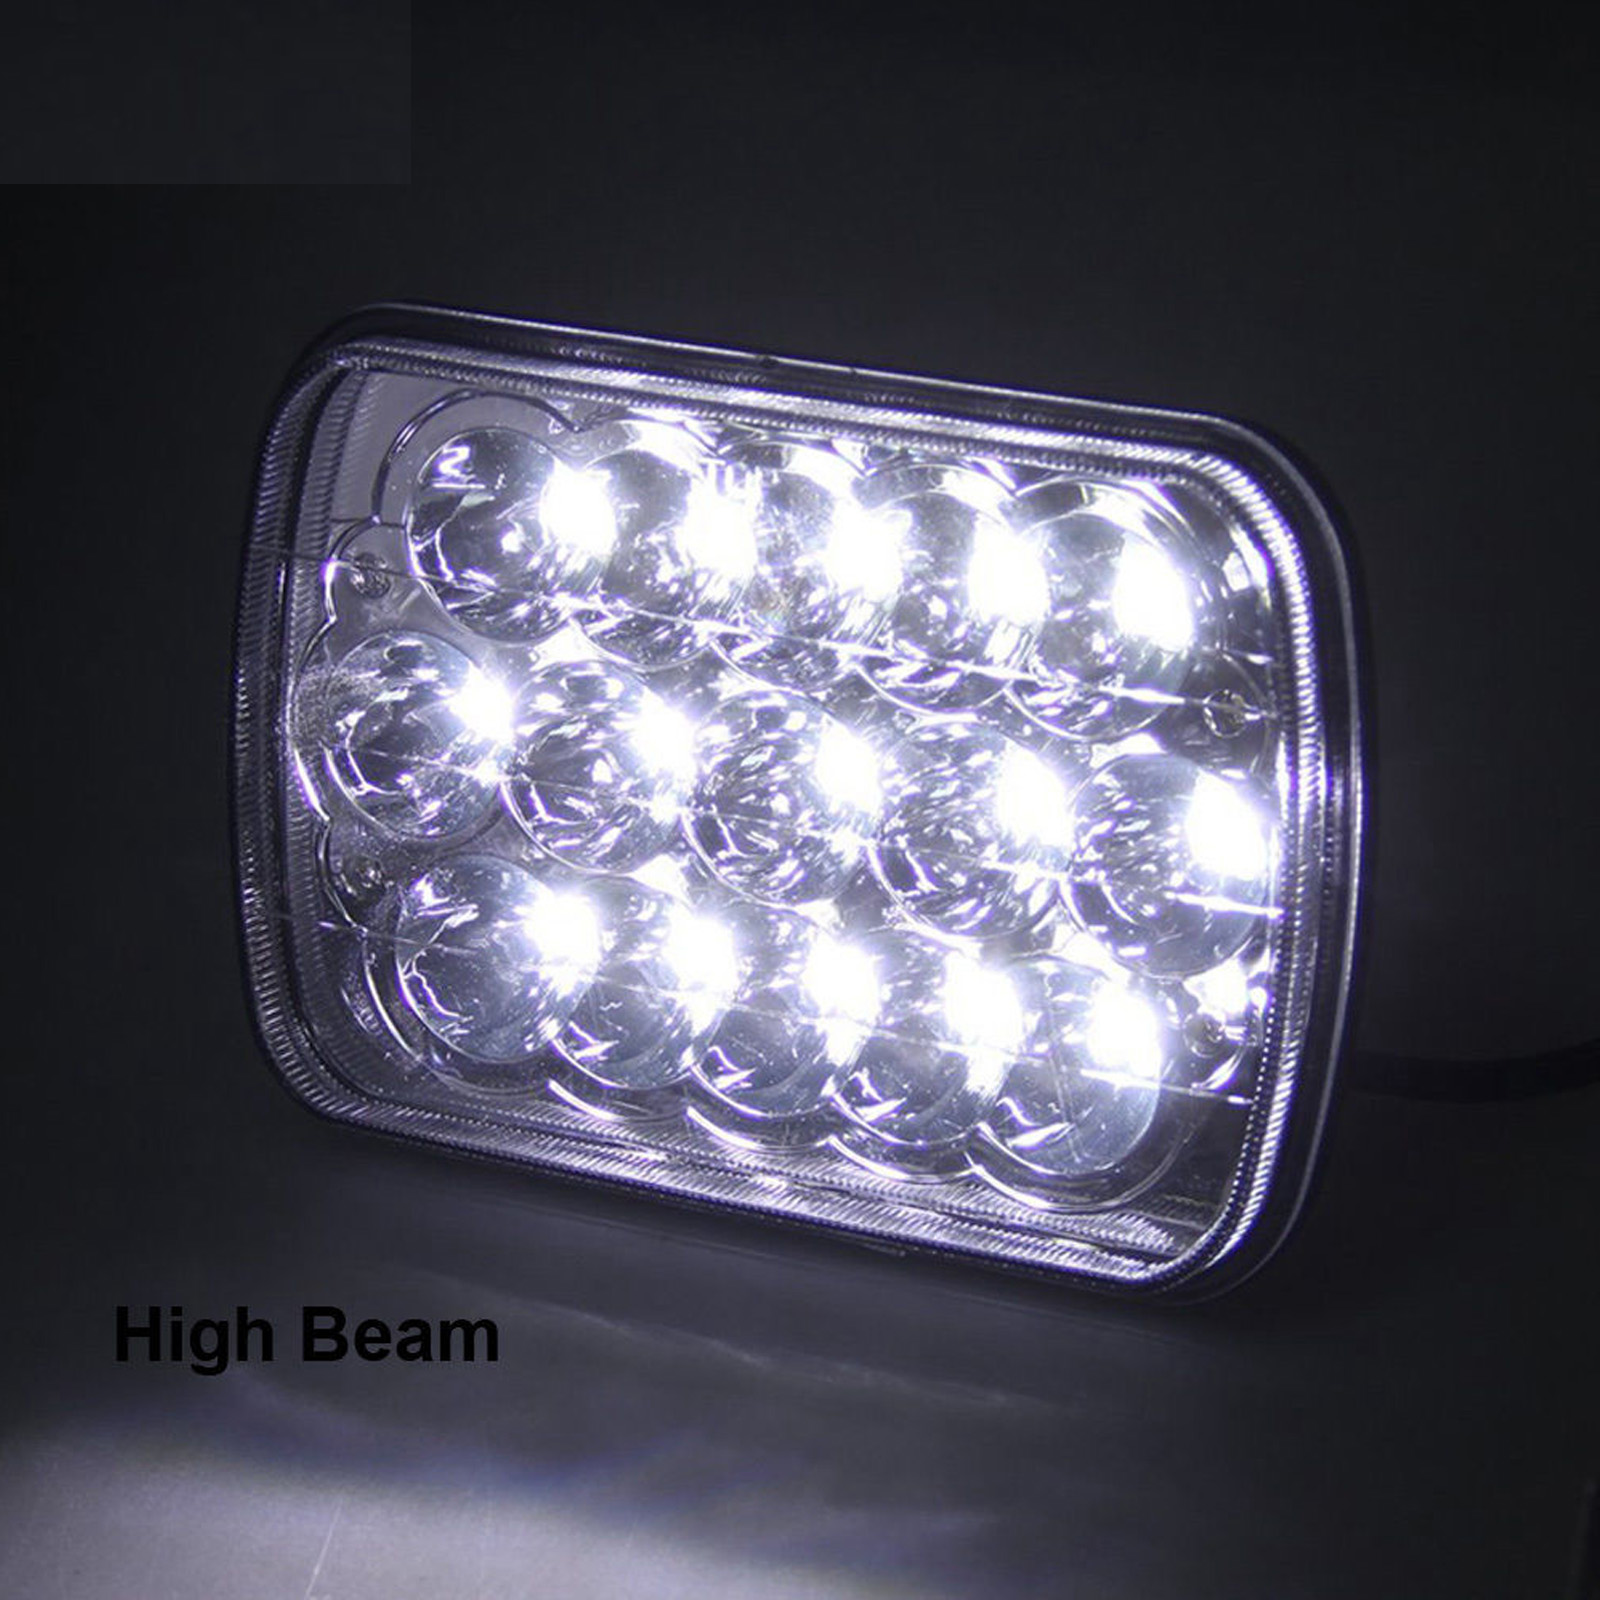 hight resolution of 7x6 5x7 led headlight 2x for ford super duty truck f550 f600 f650 f700 f750